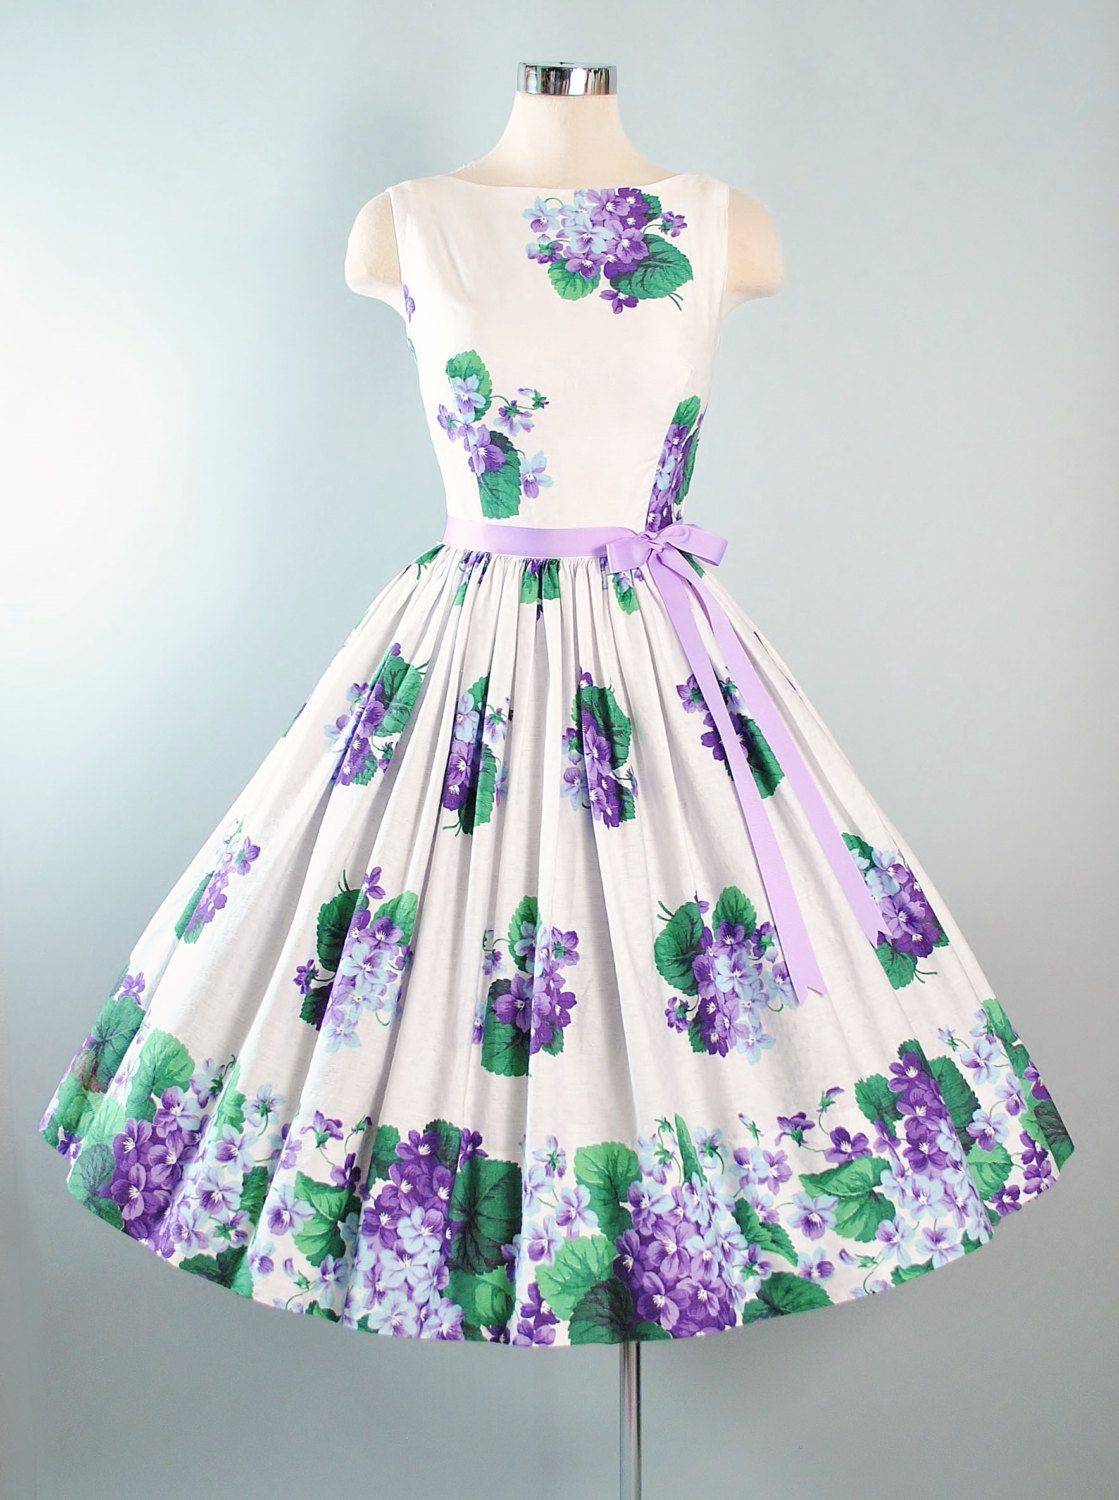 39463e9c31dc Vintage 1950s Sundress by Serbin of Florida ♢ Constructed in a White  Textured Weave Cotton Fabric with Stunning Purple